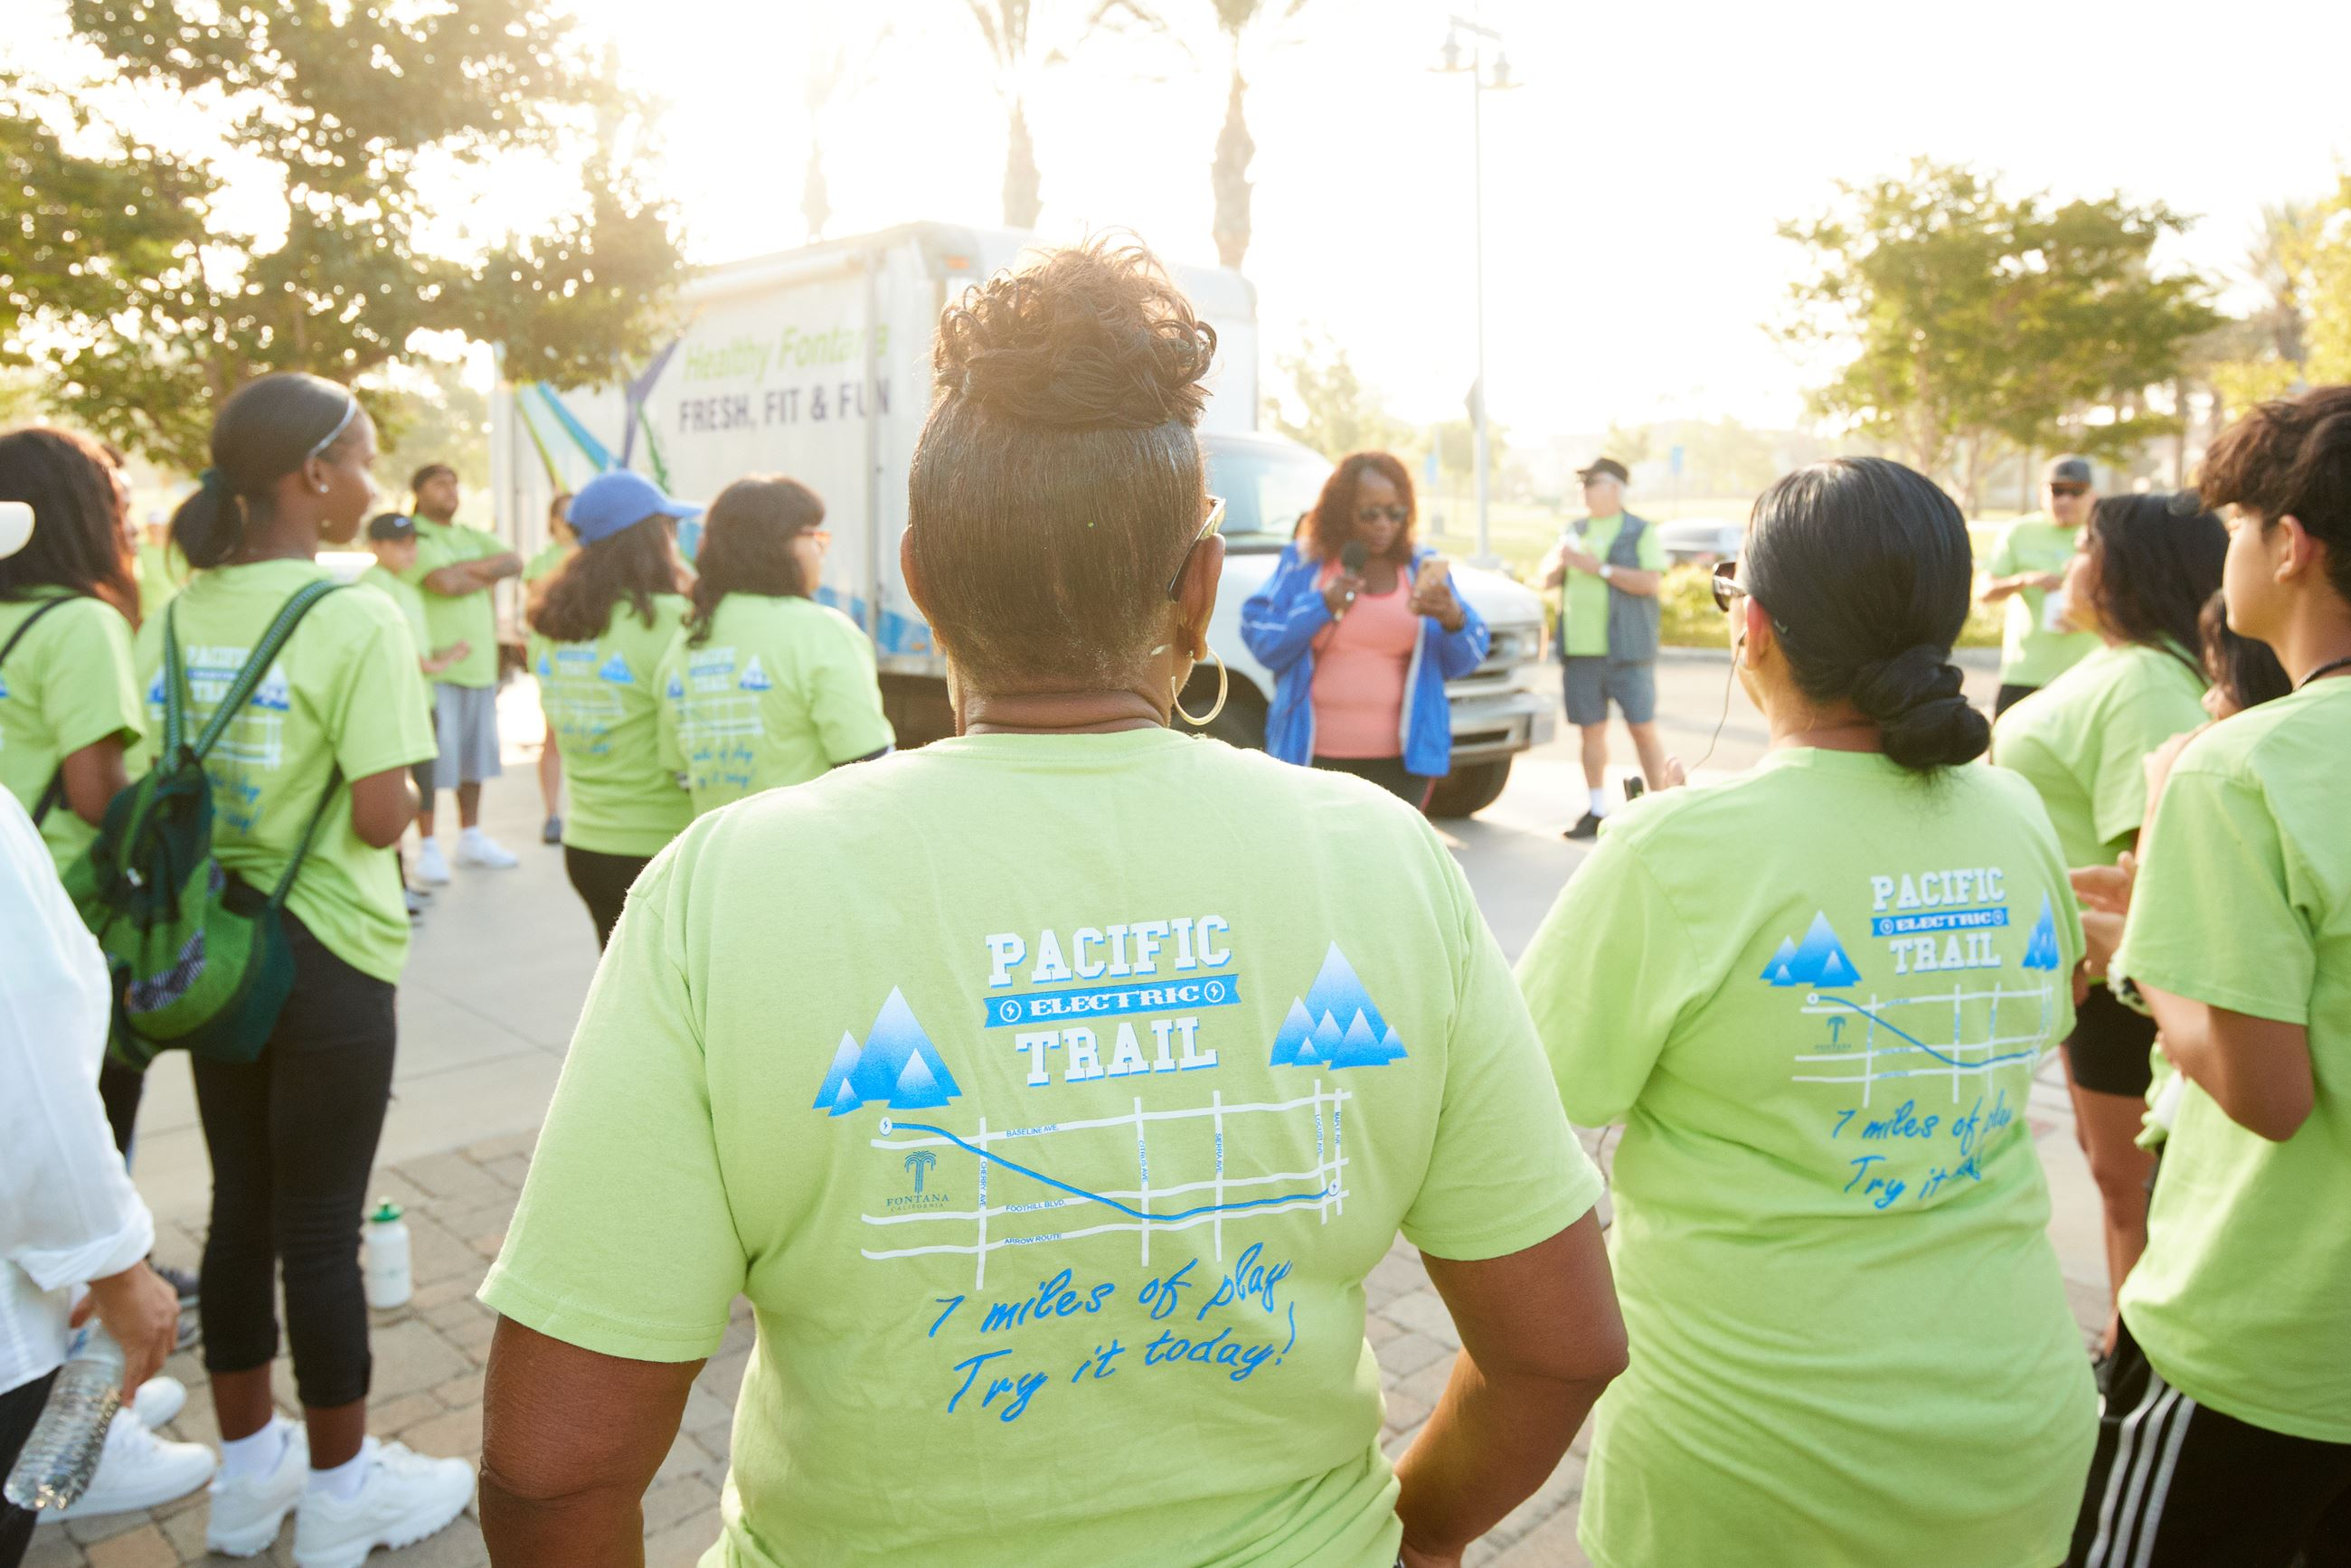 Back view of green Fontana Walks shirts worn by participants